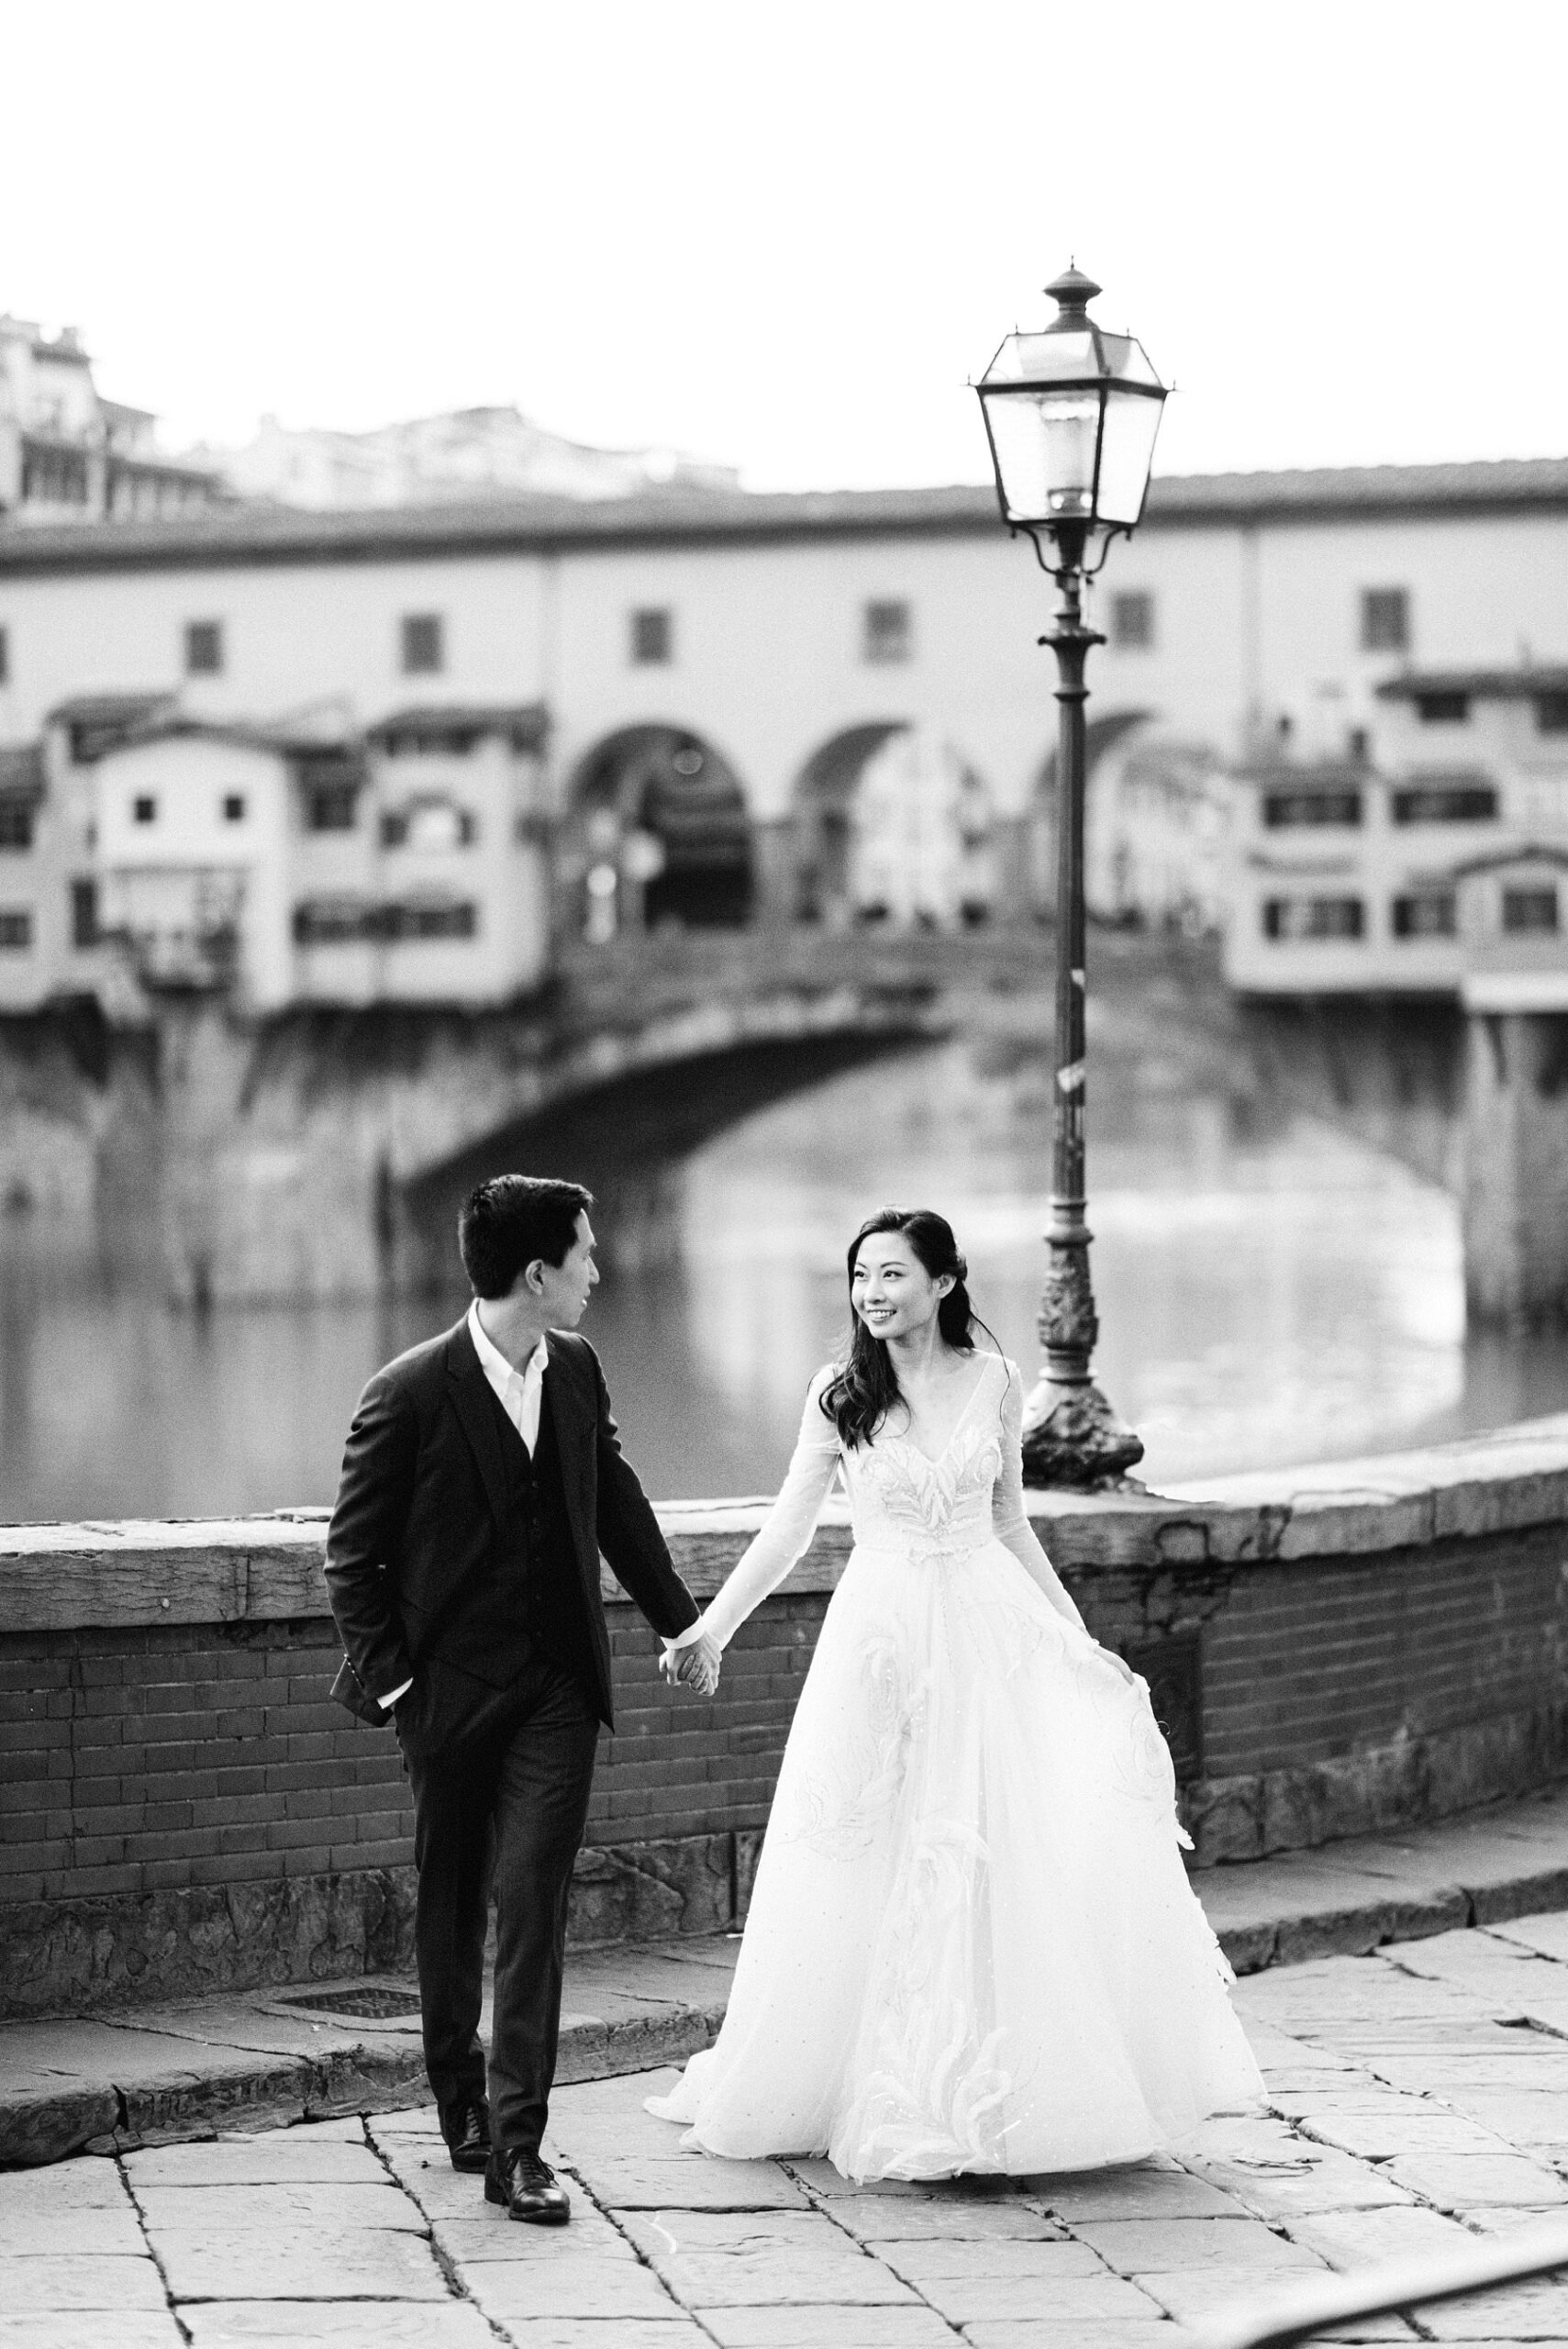 Unforgettable and gorgeous honeymoon photo shoot experience in Florence during covid-19 pandemic